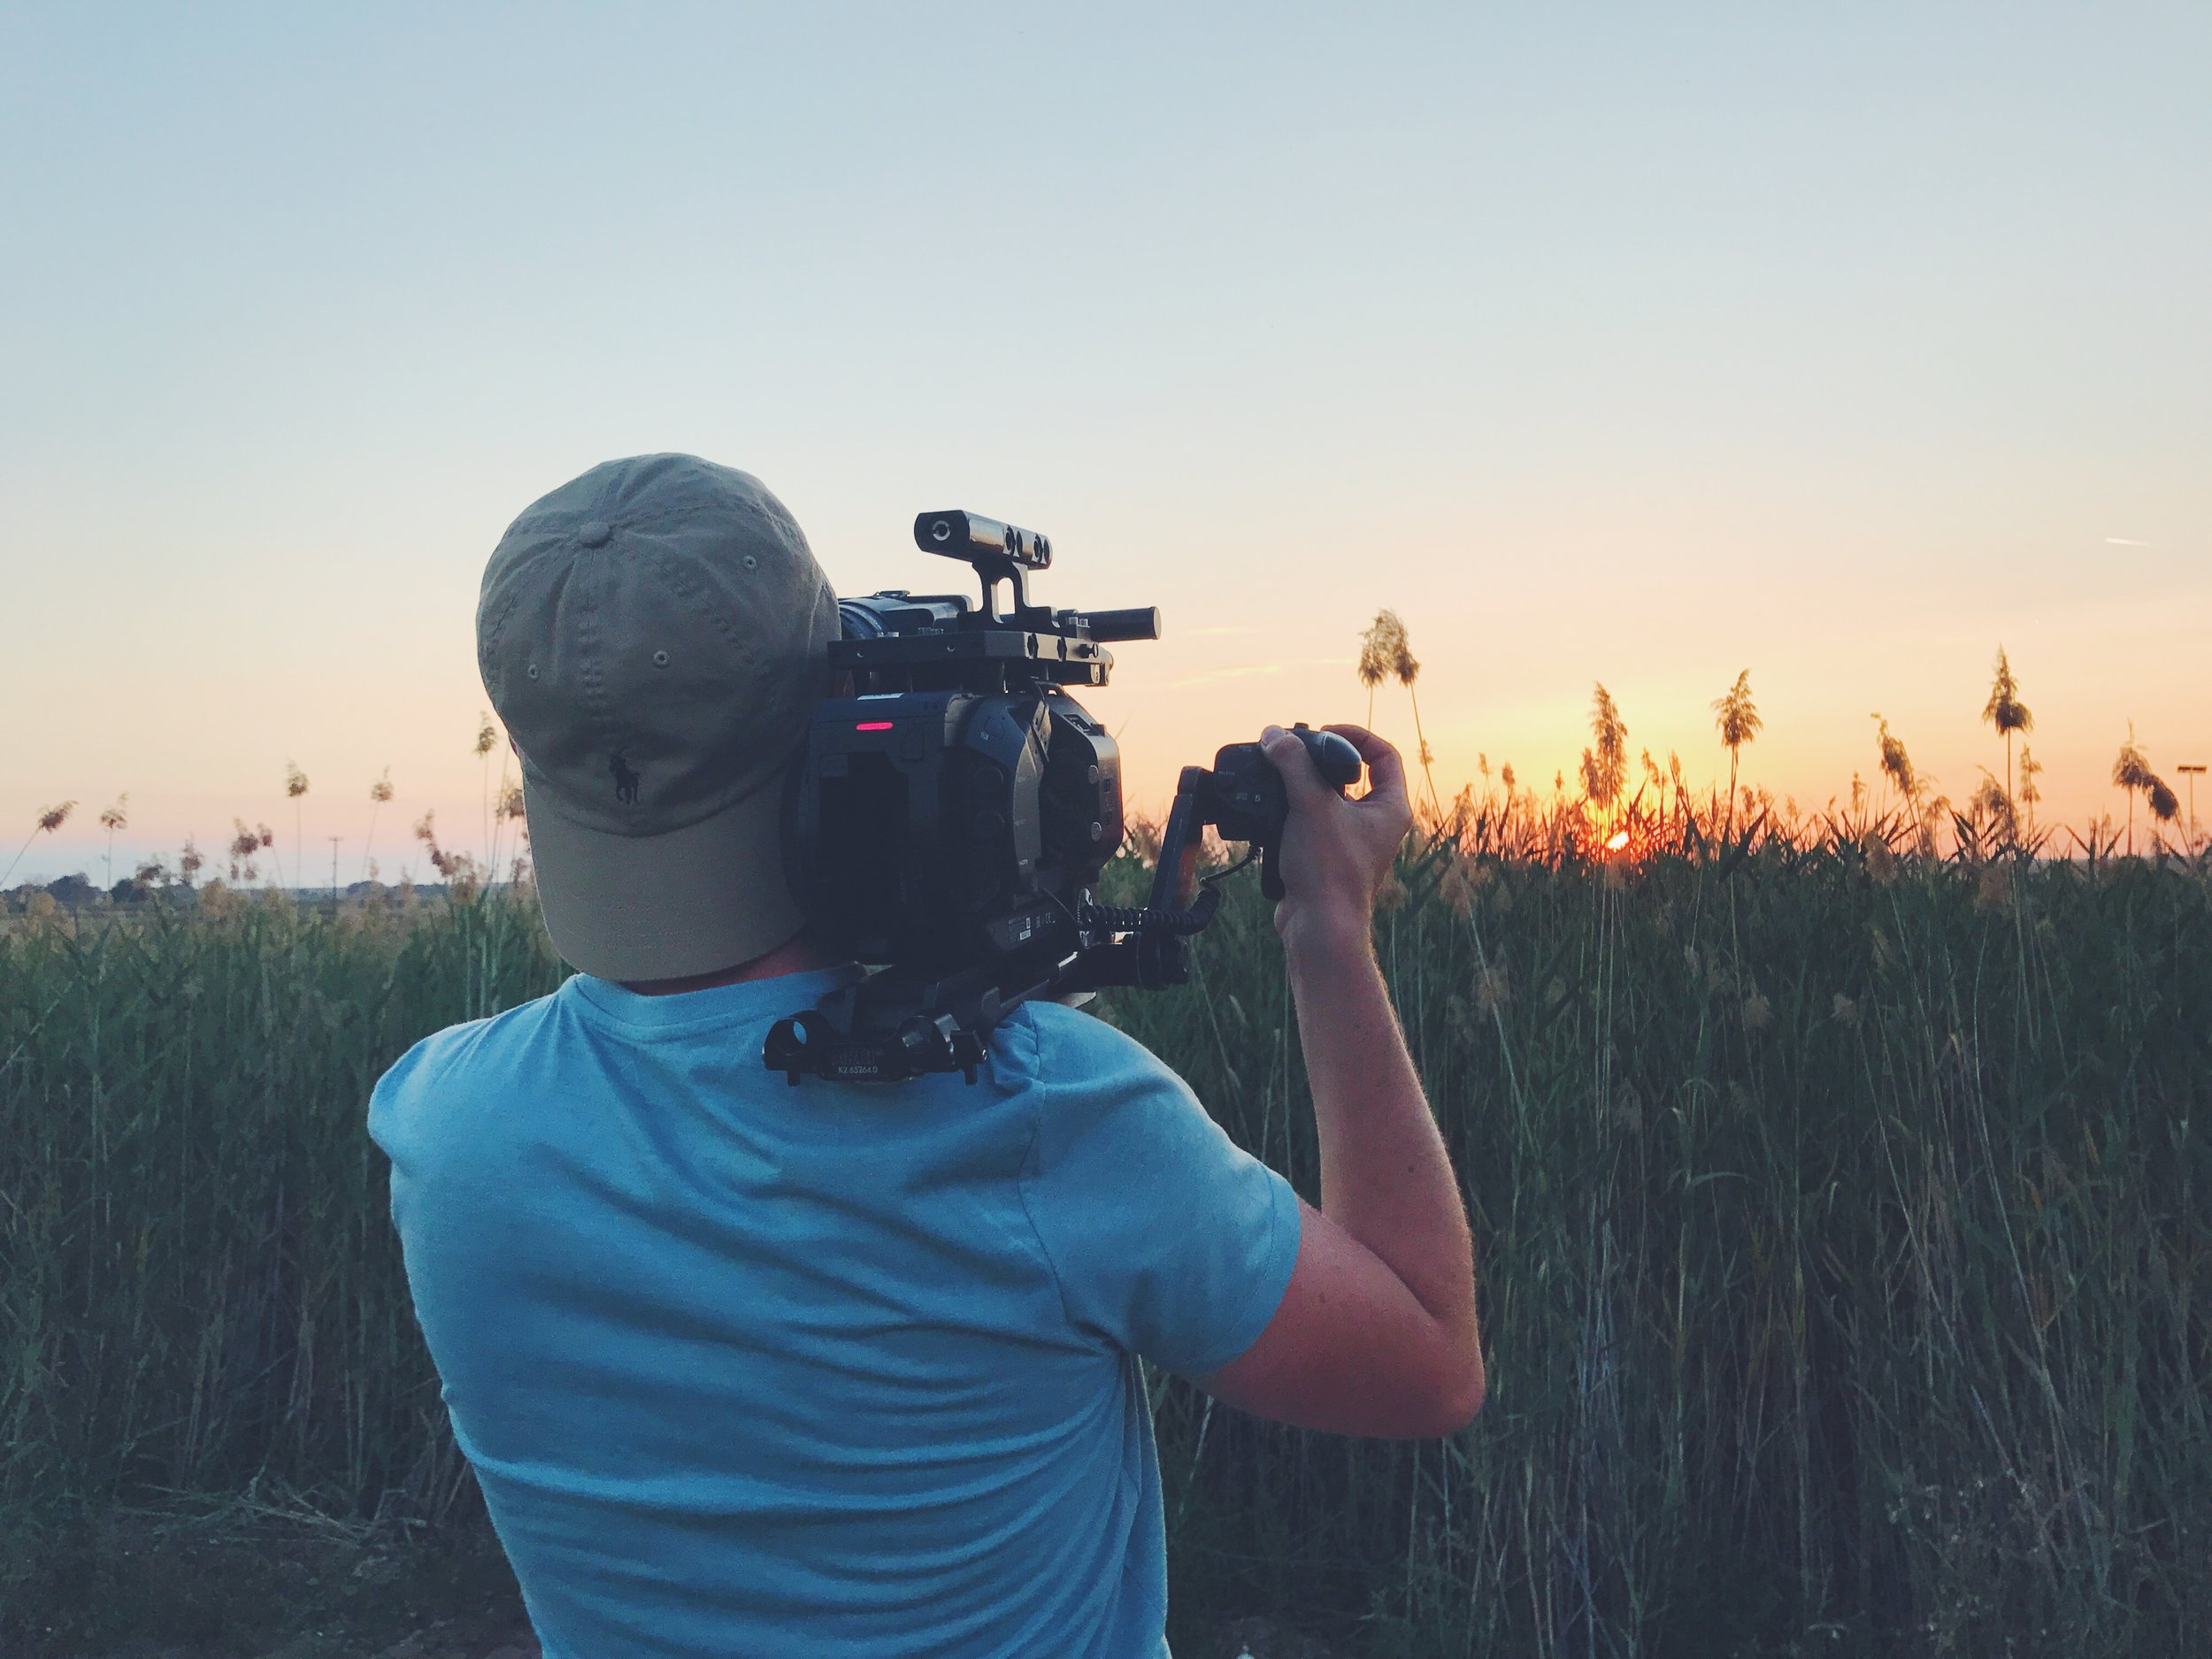 Sunset shooting with Sony FS7 and Zeiss Ultra Primes.